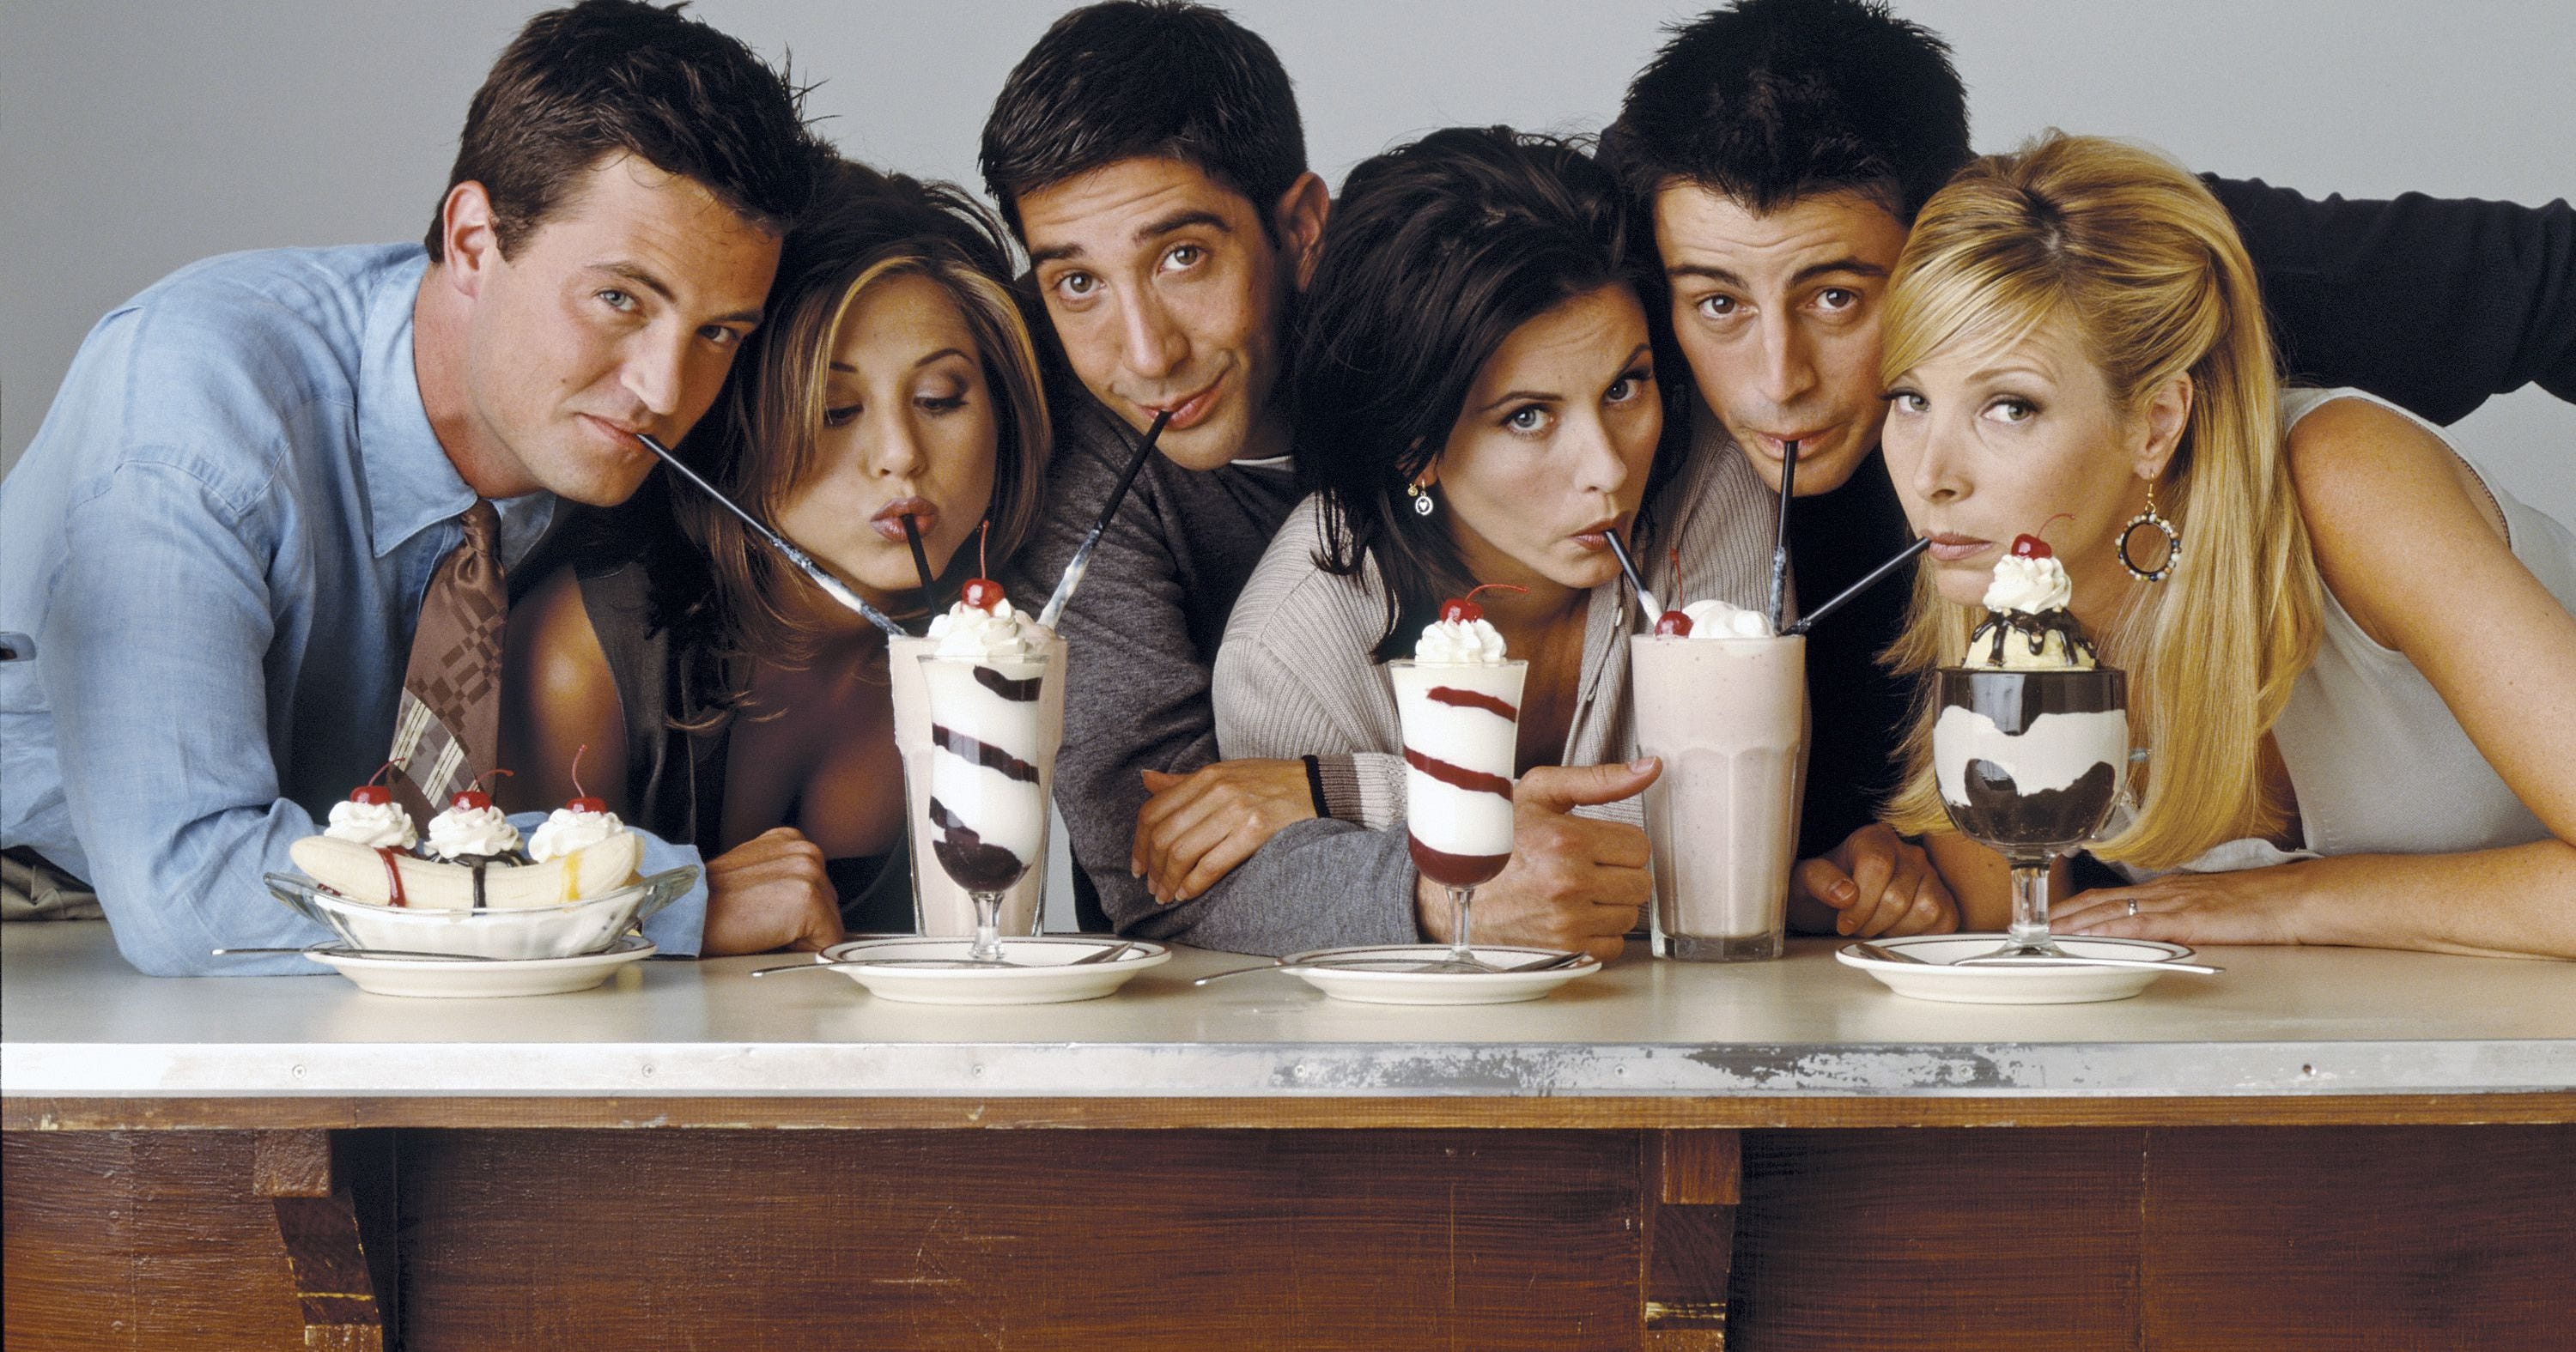 'Friends' Creator Regrets One Of The Show's Problematic Elements